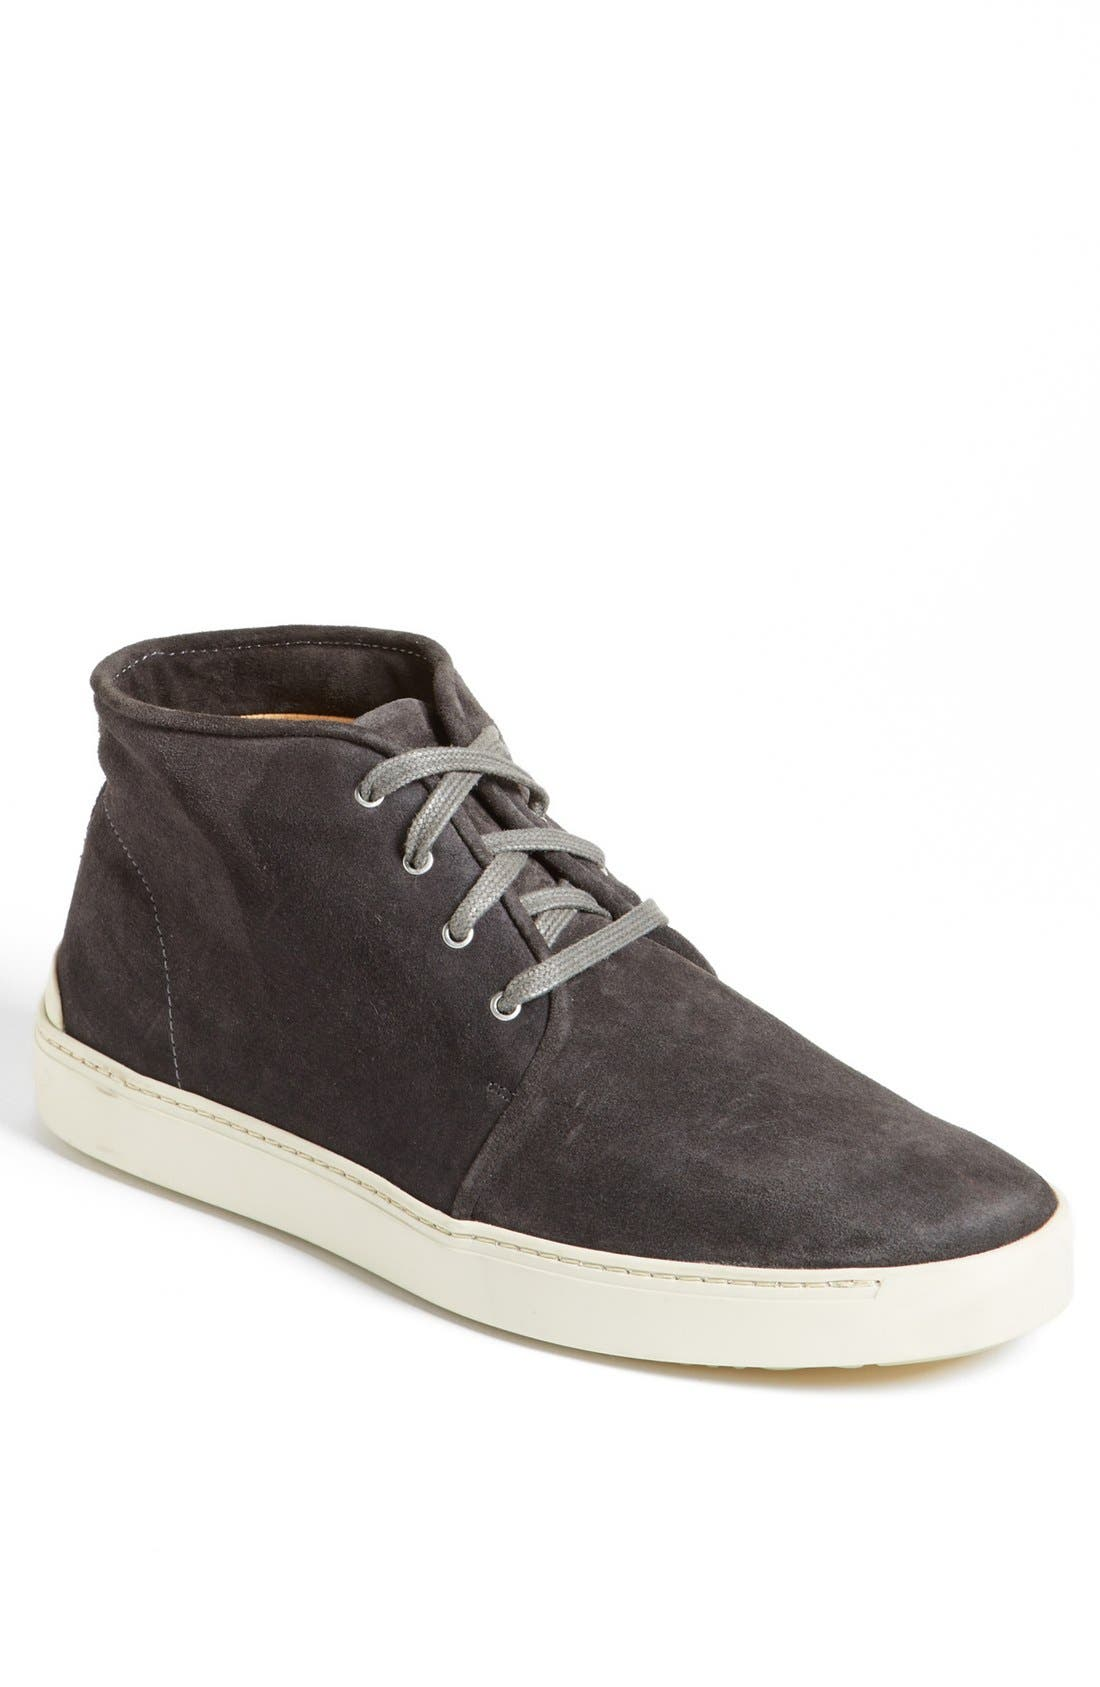 Alternate Image 1 Selected - rag & bone 'Archer' Sneaker